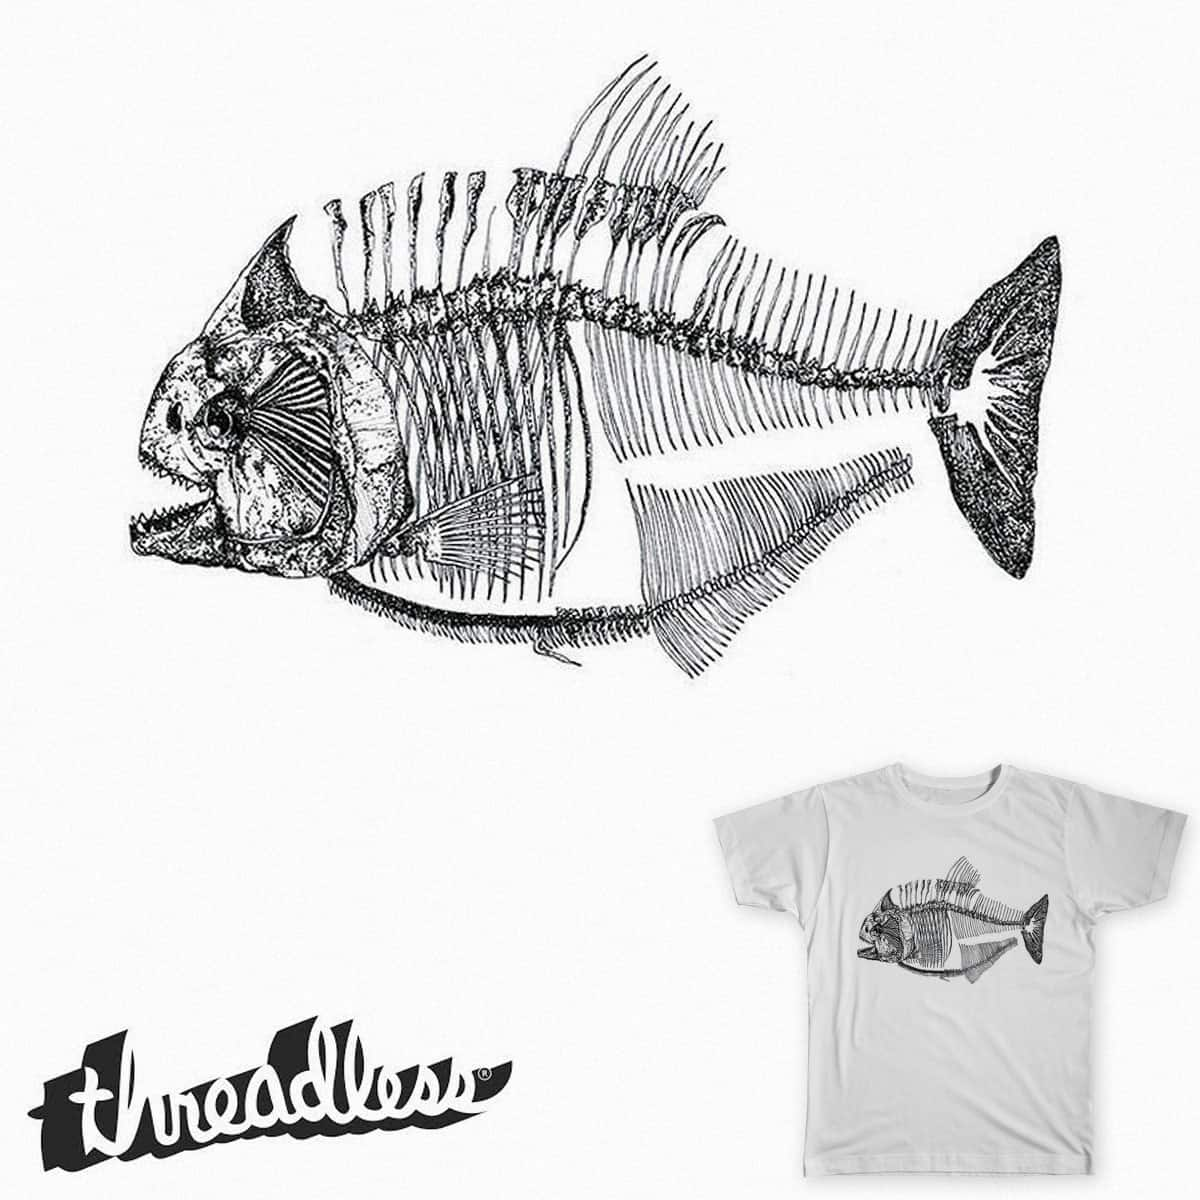 Something Fishy by ben.wills.33 on Threadless